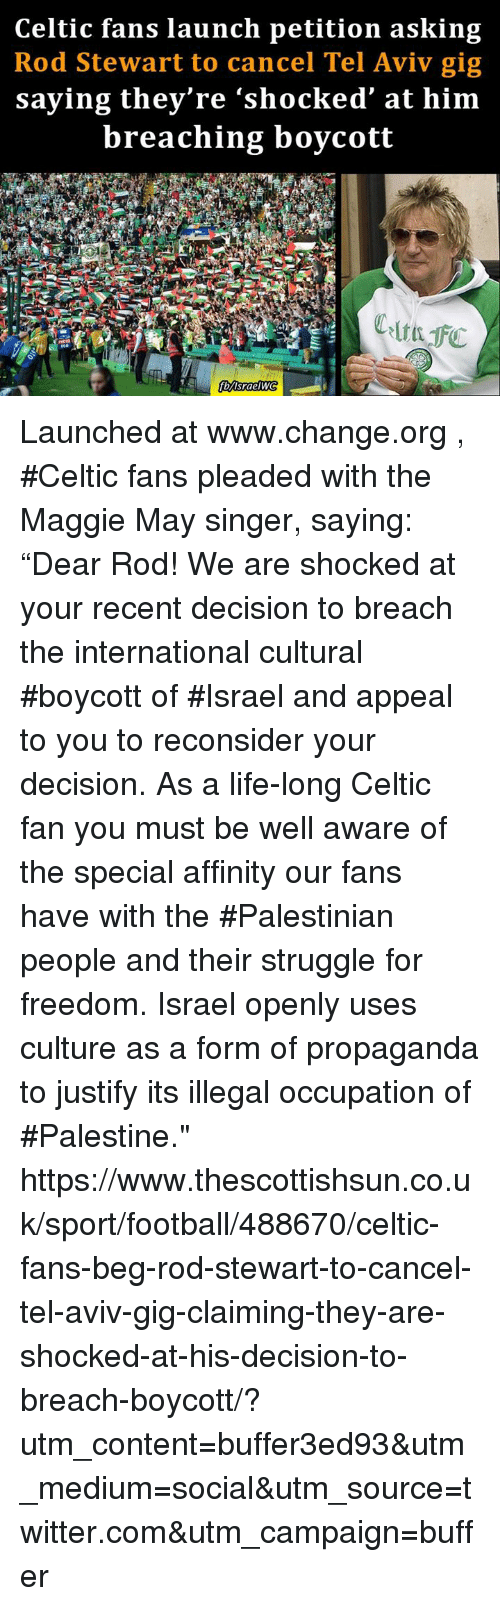 "Celtic, Memes, and Celtics: Celtic fans launch petition asking  Rod Stewart to cancel Tel Aviv gig  saying they're ""shocked at him  breaching boycott Launched at www.change.org , #Celtic fans pleaded with the Maggie May singer, saying: ""Dear Rod! We are shocked at your recent decision to breach the international cultural #boycott of #Israel and appeal to you to reconsider your decision. As a life-long Celtic fan you must be well aware of the special affinity our fans have with the #Palestinian people and their struggle for freedom. Israel openly uses culture as a form of propaganda to justify its illegal occupation of #Palestine."" https://www.thescottishsun.co.uk/sport/football/488670/celtic-fans-beg-rod-stewart-to-cancel-tel-aviv-gig-claiming-they-are-shocked-at-his-decision-to-breach-boycott/?utm_content=buffer3ed93&utm_medium=social&utm_source=twitter.com&utm_campaign=buffer"